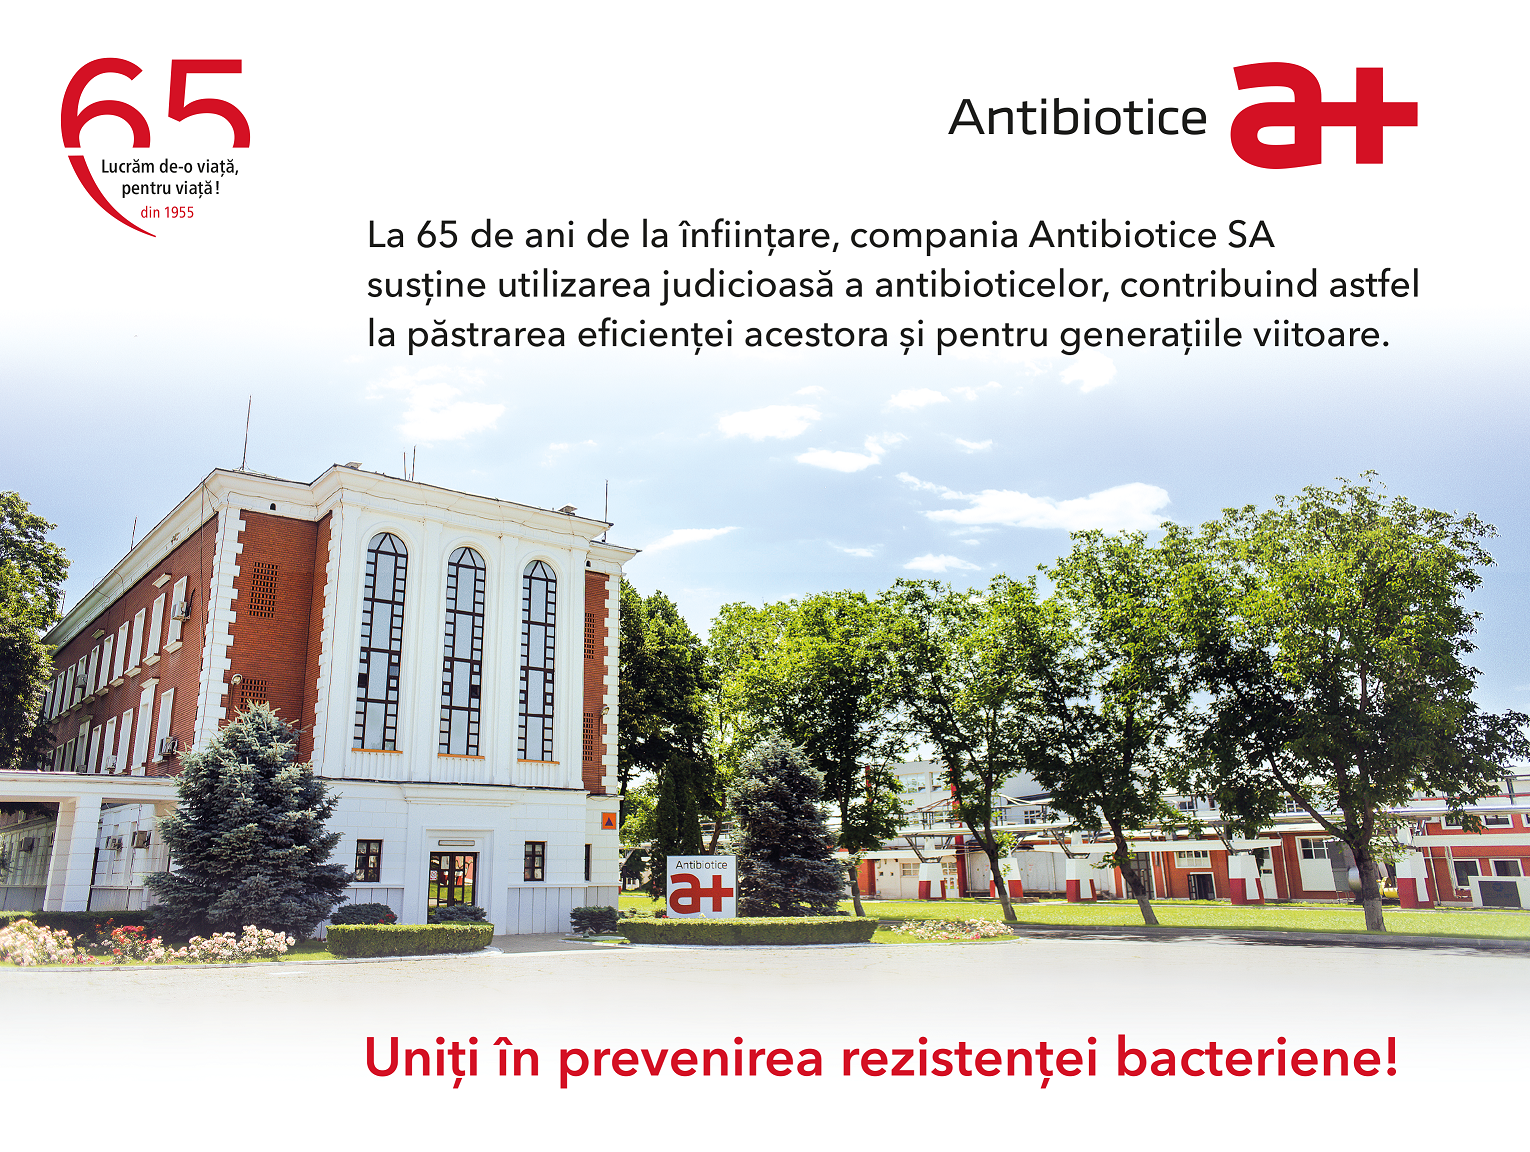 Antibiotice site 2